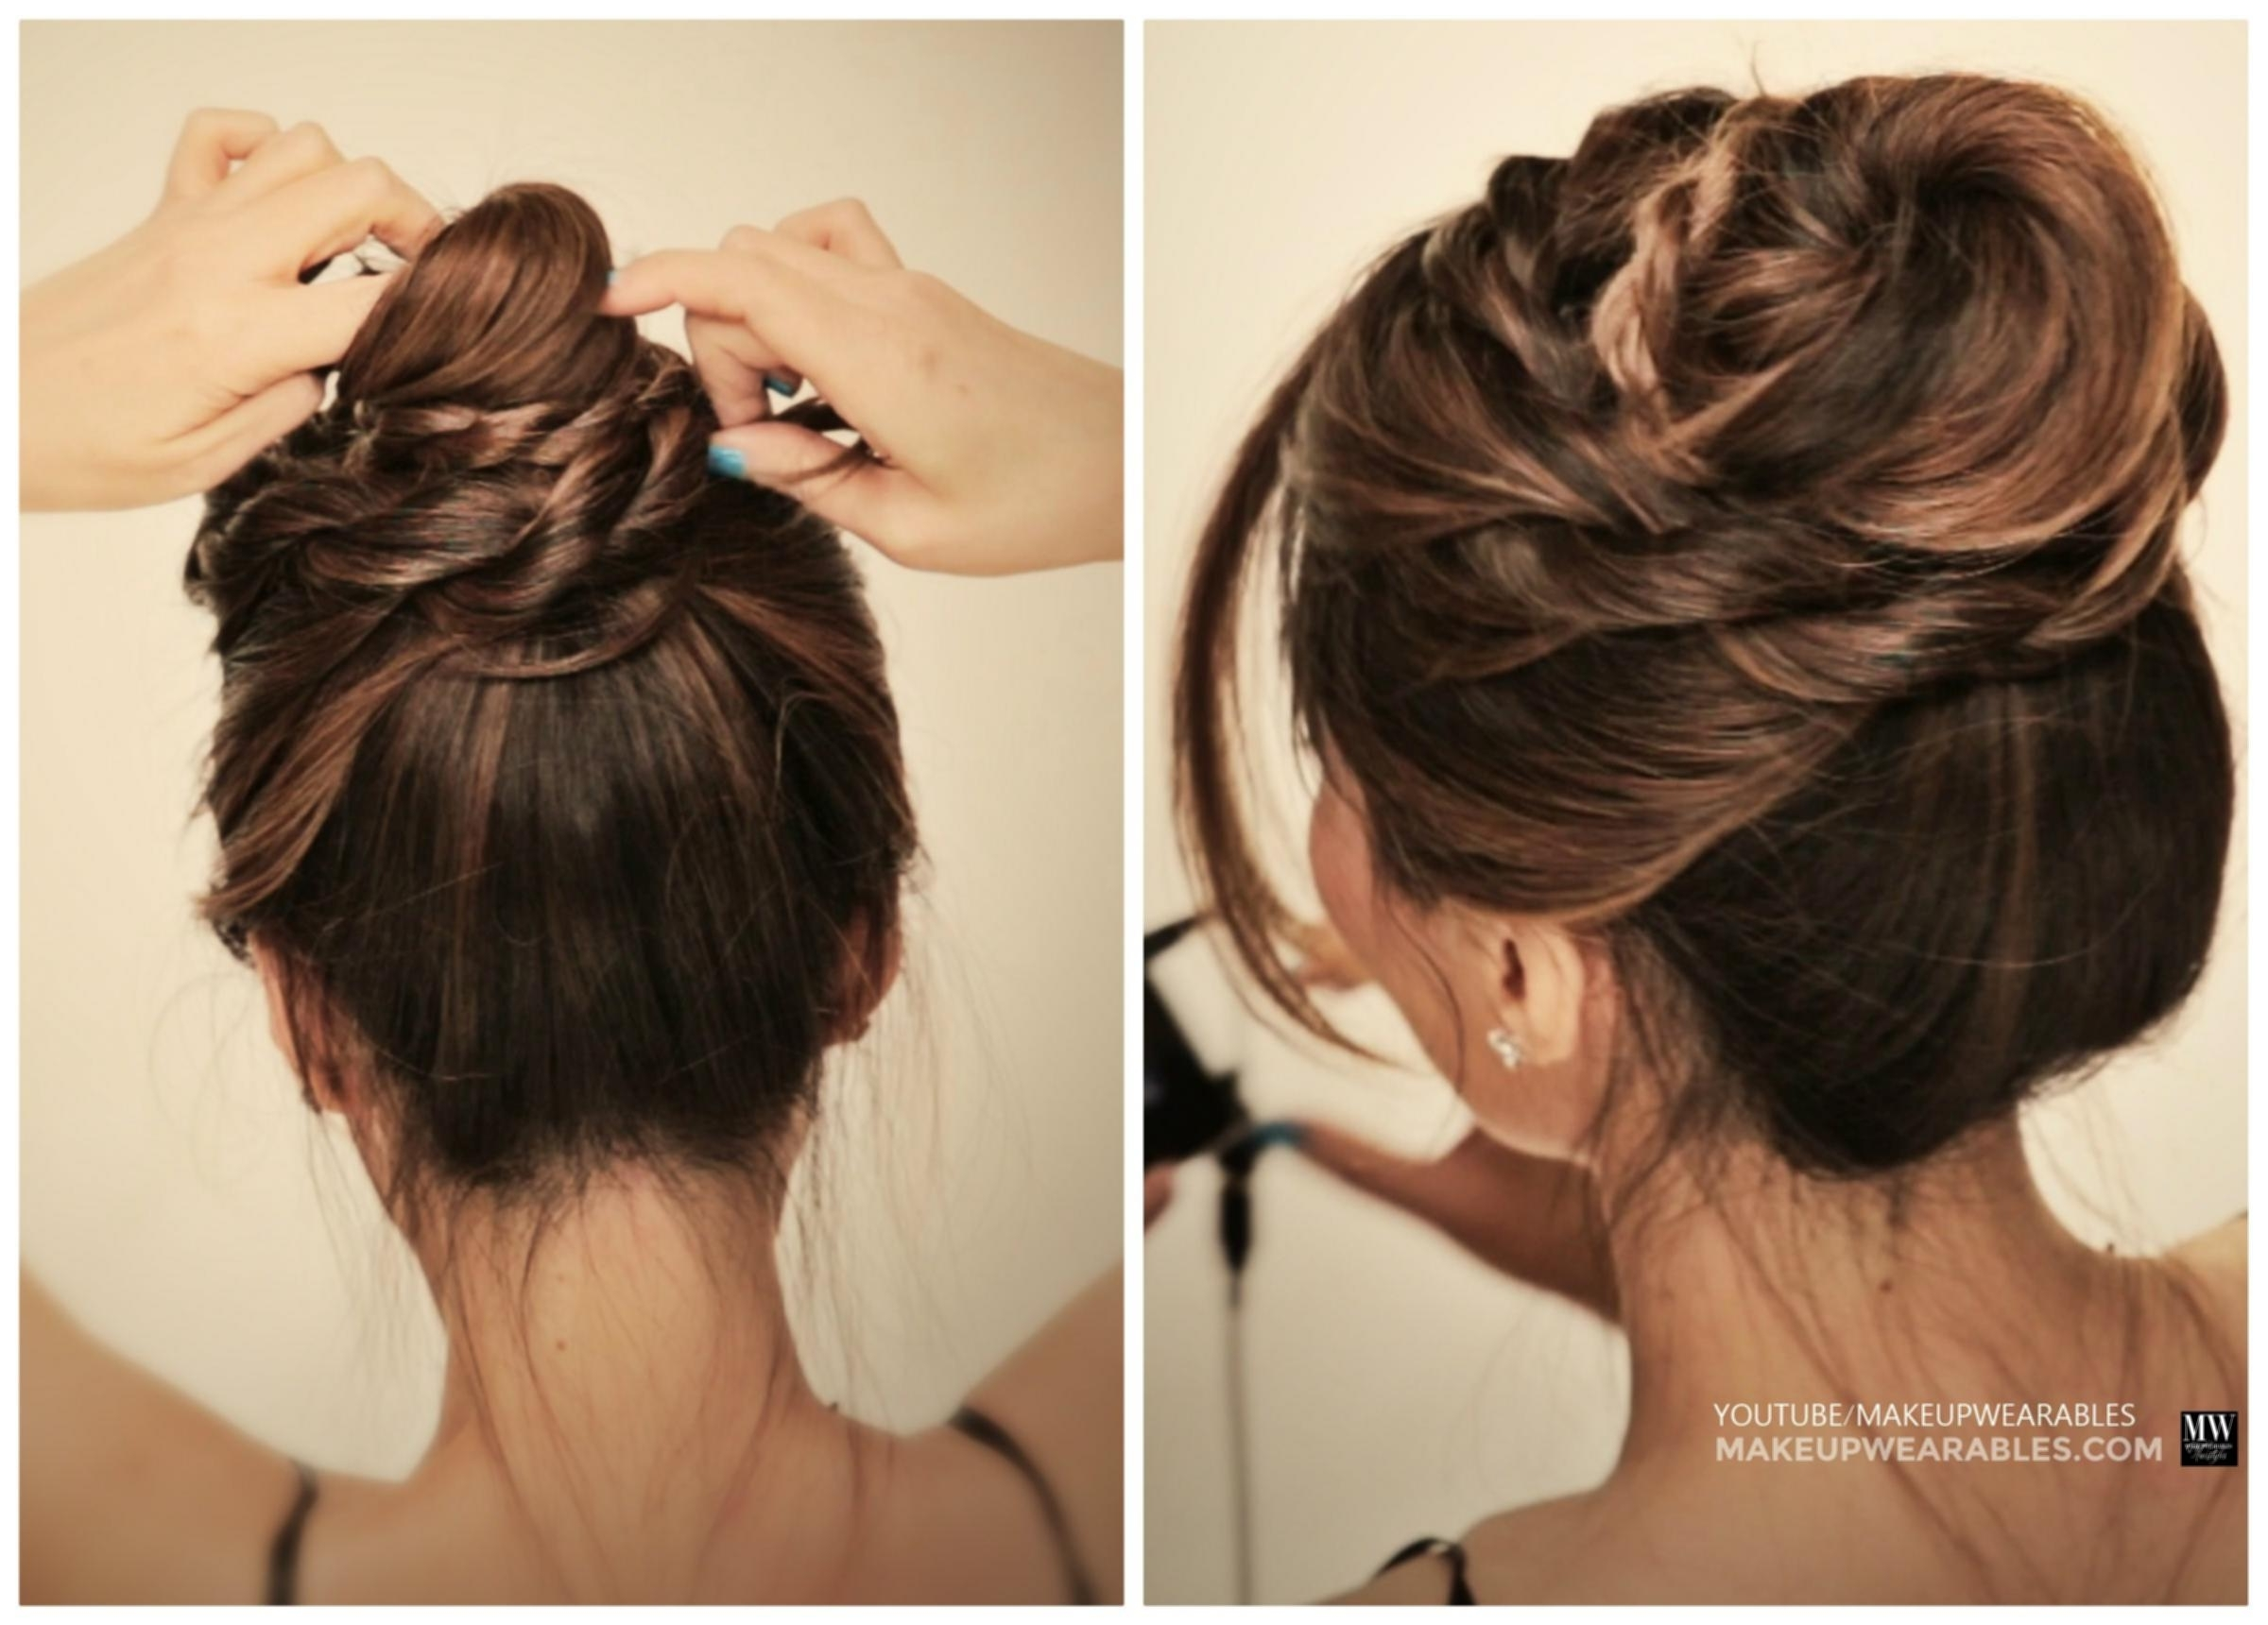 Quick Cute Messy Hairstyles Cute Messy Bun Braids Ballerina Twisted Pertaining To Quick Twist Updo Hairstyles (View 12 of 15)